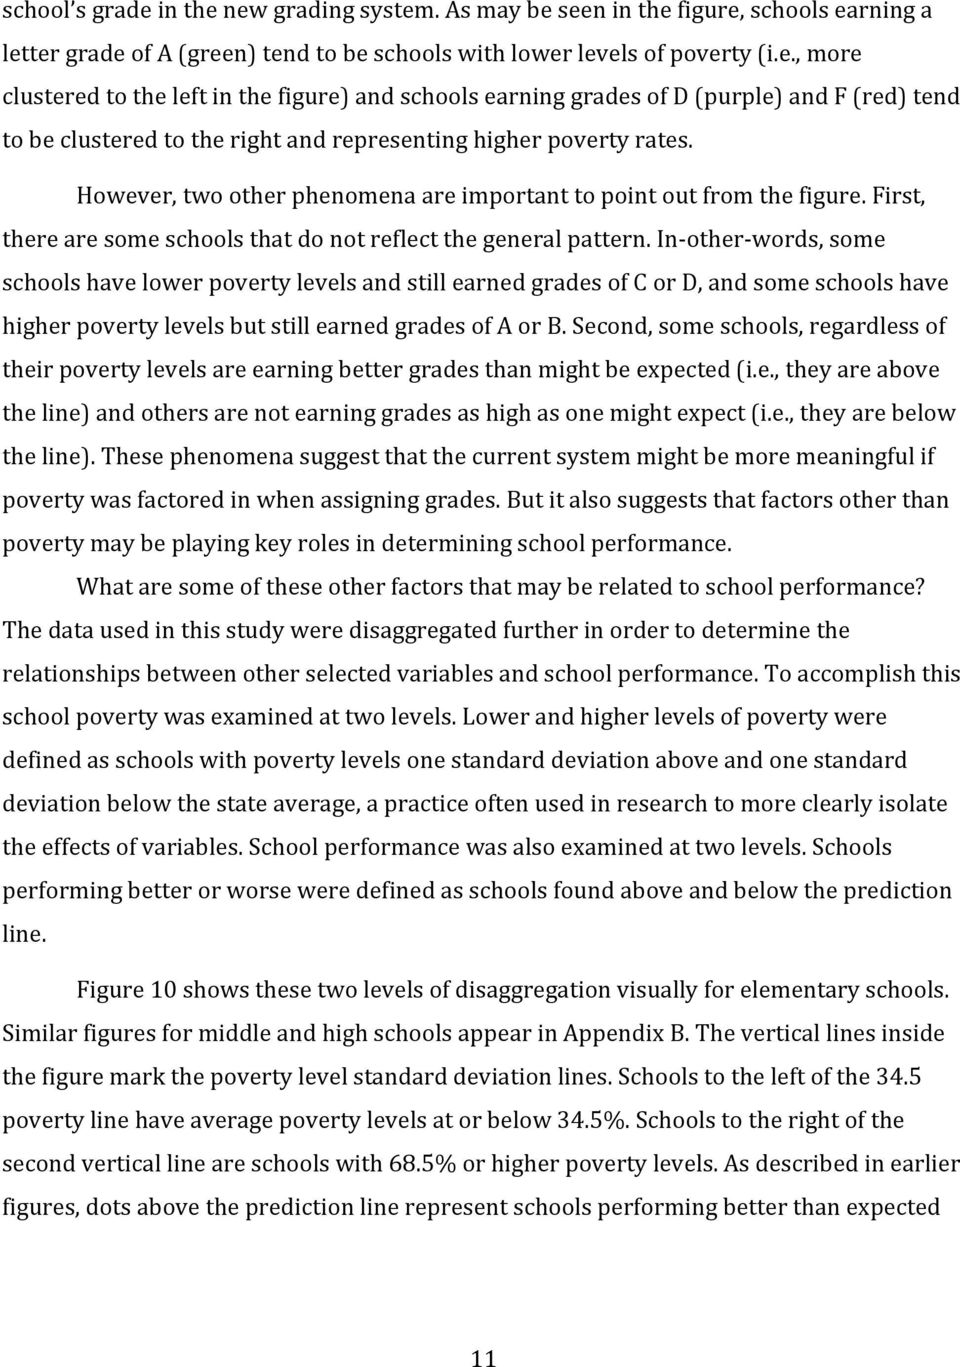 In other words, some schools have lower poverty levels and still earned grades of C or D, and some schools have higher poverty levels but still earned grades of A or B.